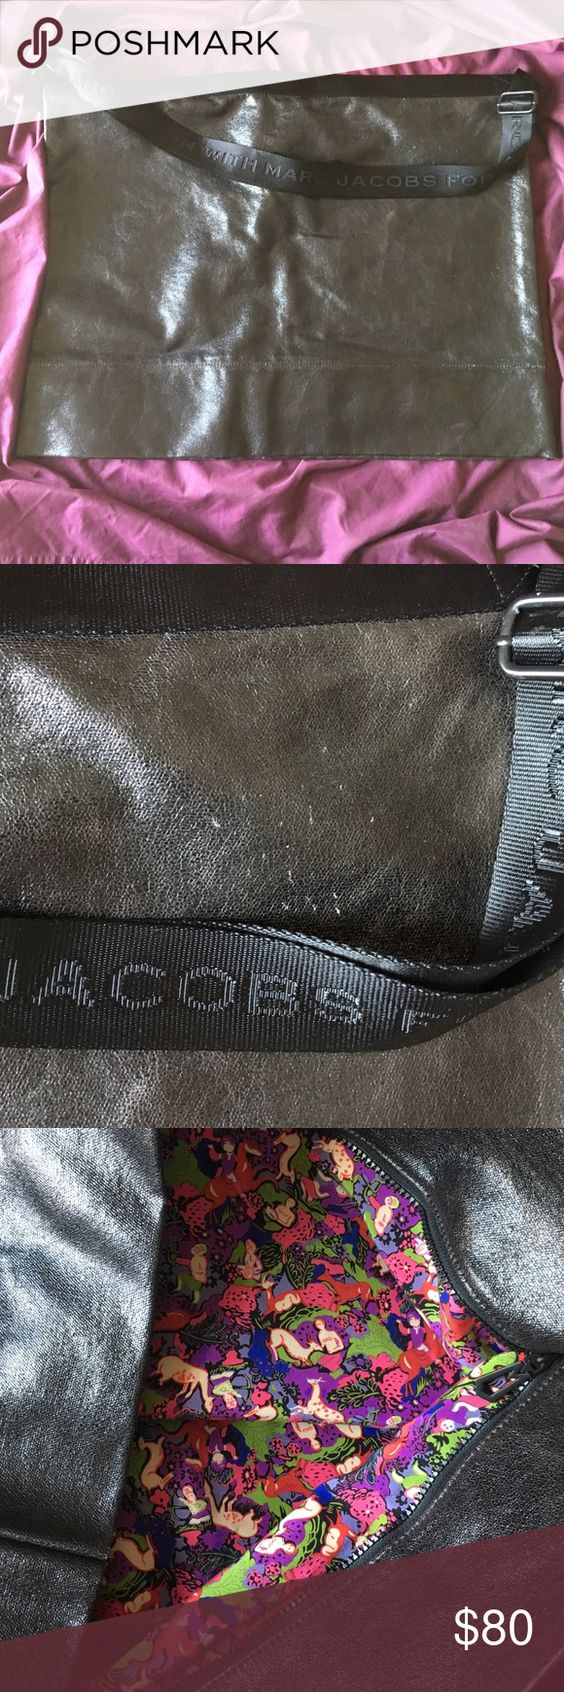 Marc Jacobs Oversized fold over messenger bag Overt oversized Marc Jacobs messenger bag. Colorful inner lining, long. Adjustable strap. Small scratches barely noticeable in front area. Marc by Marc Jacobs Bags Shoulder Bags